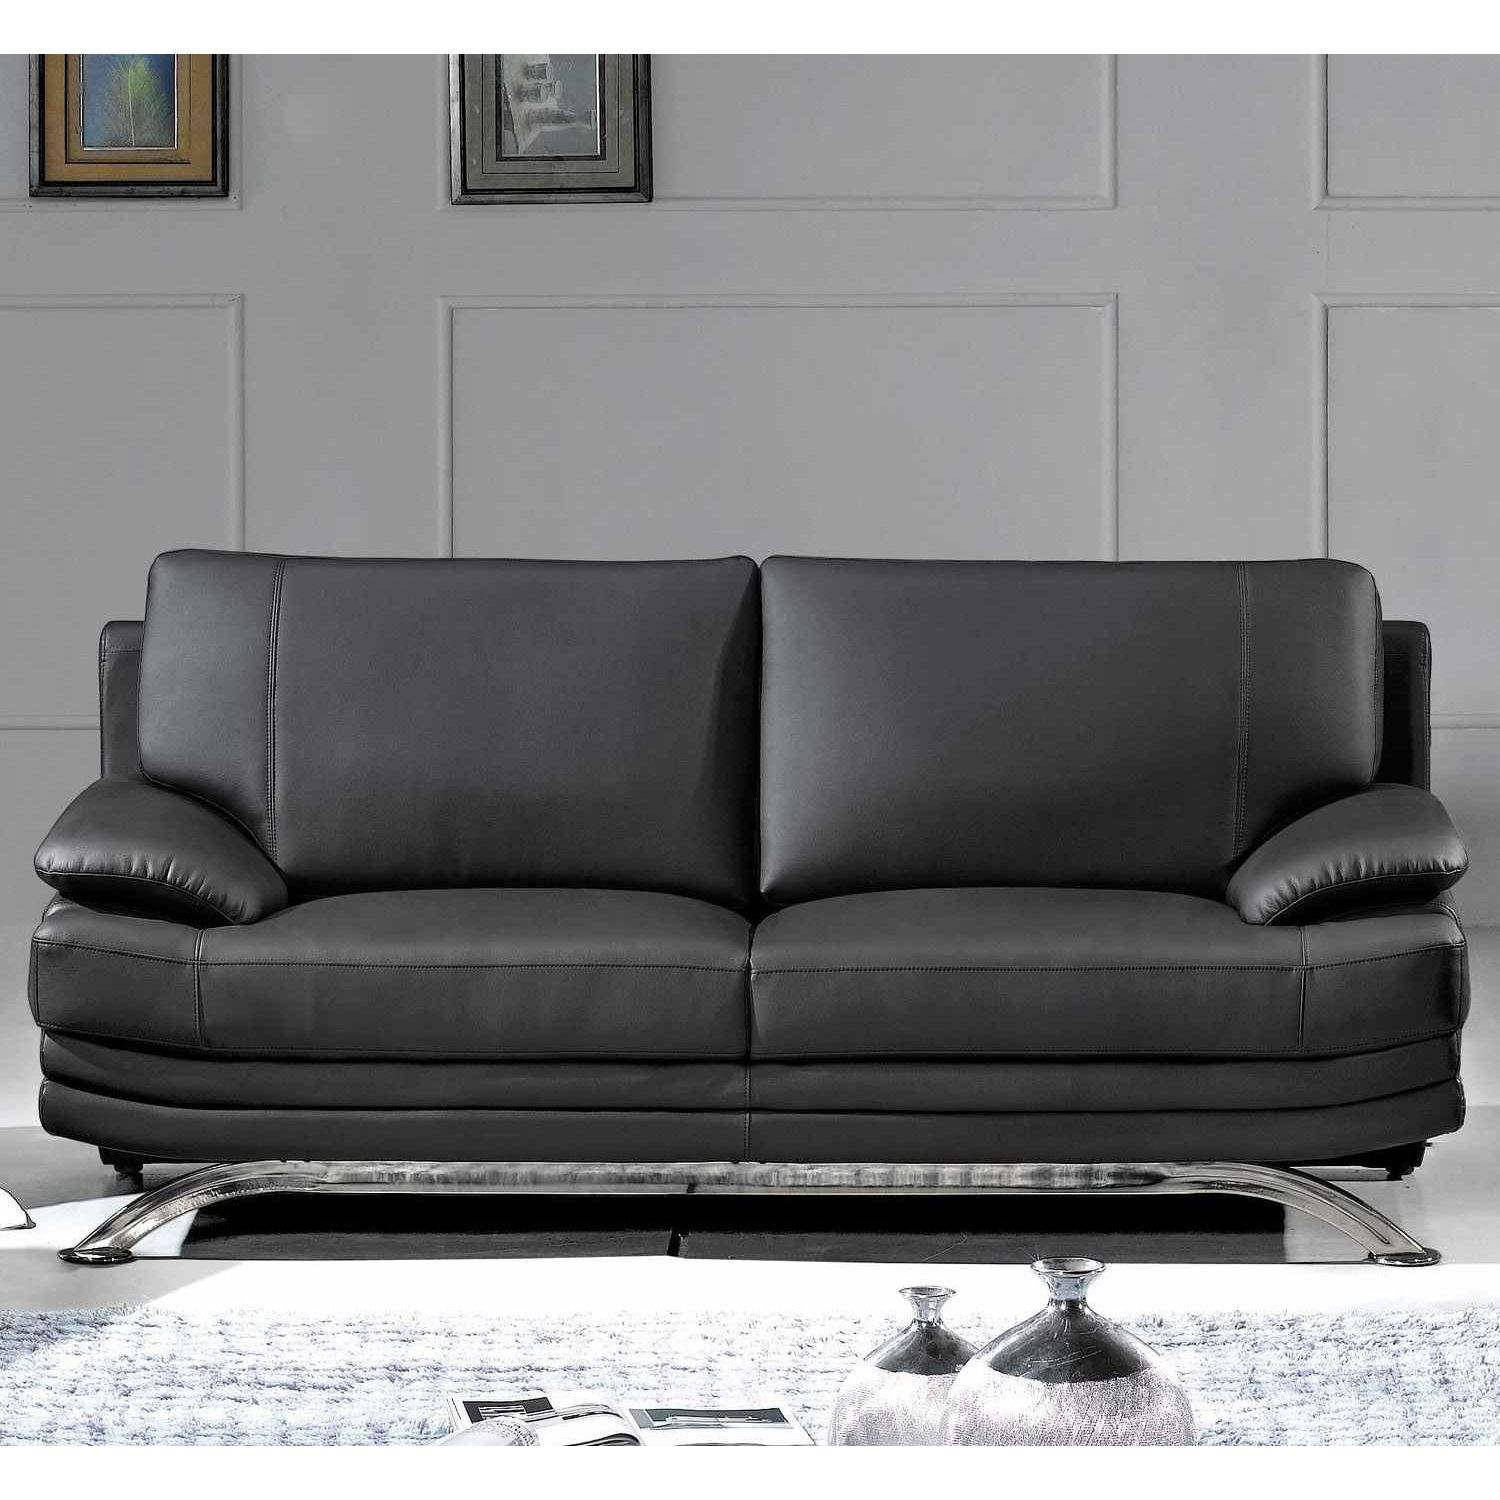 Deco in paris canape cuir noir 3 places romeo can romeo - Peindre un canape en simili cuir ...